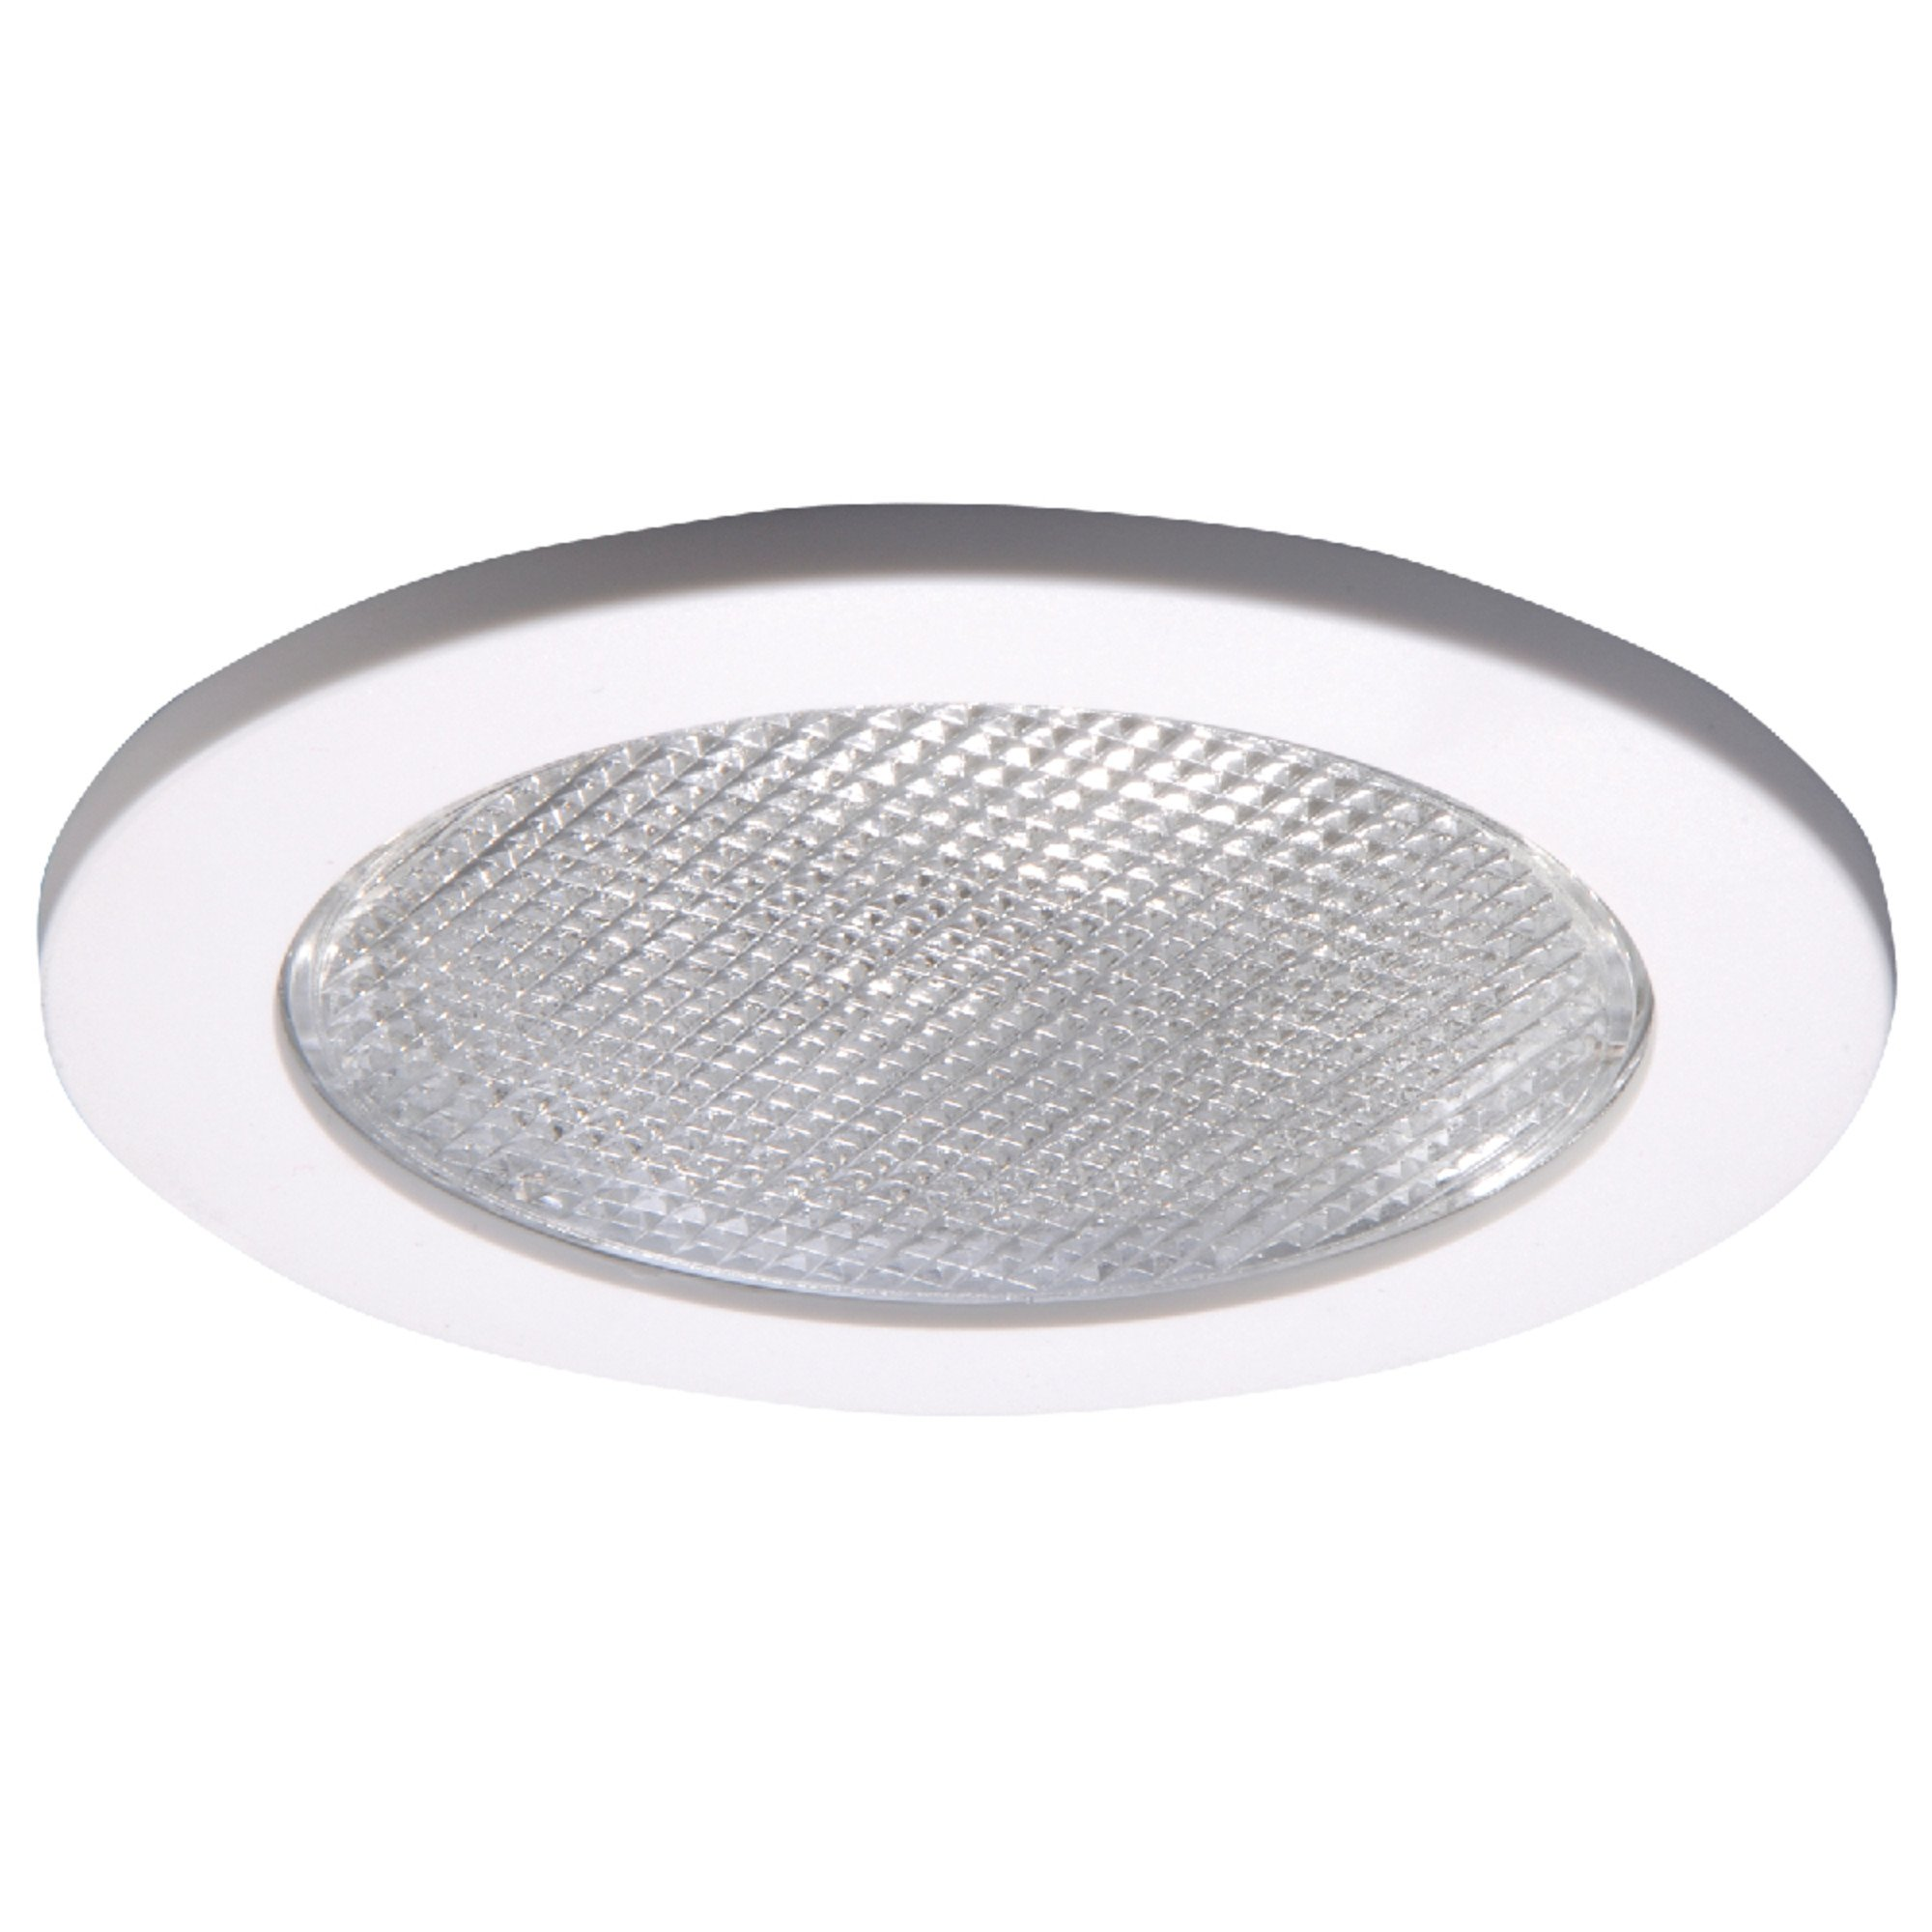 Halo 4055WH E26 Series Recessed Lighting Shower Trim with Prismatic Glass Lens, 4 In, White